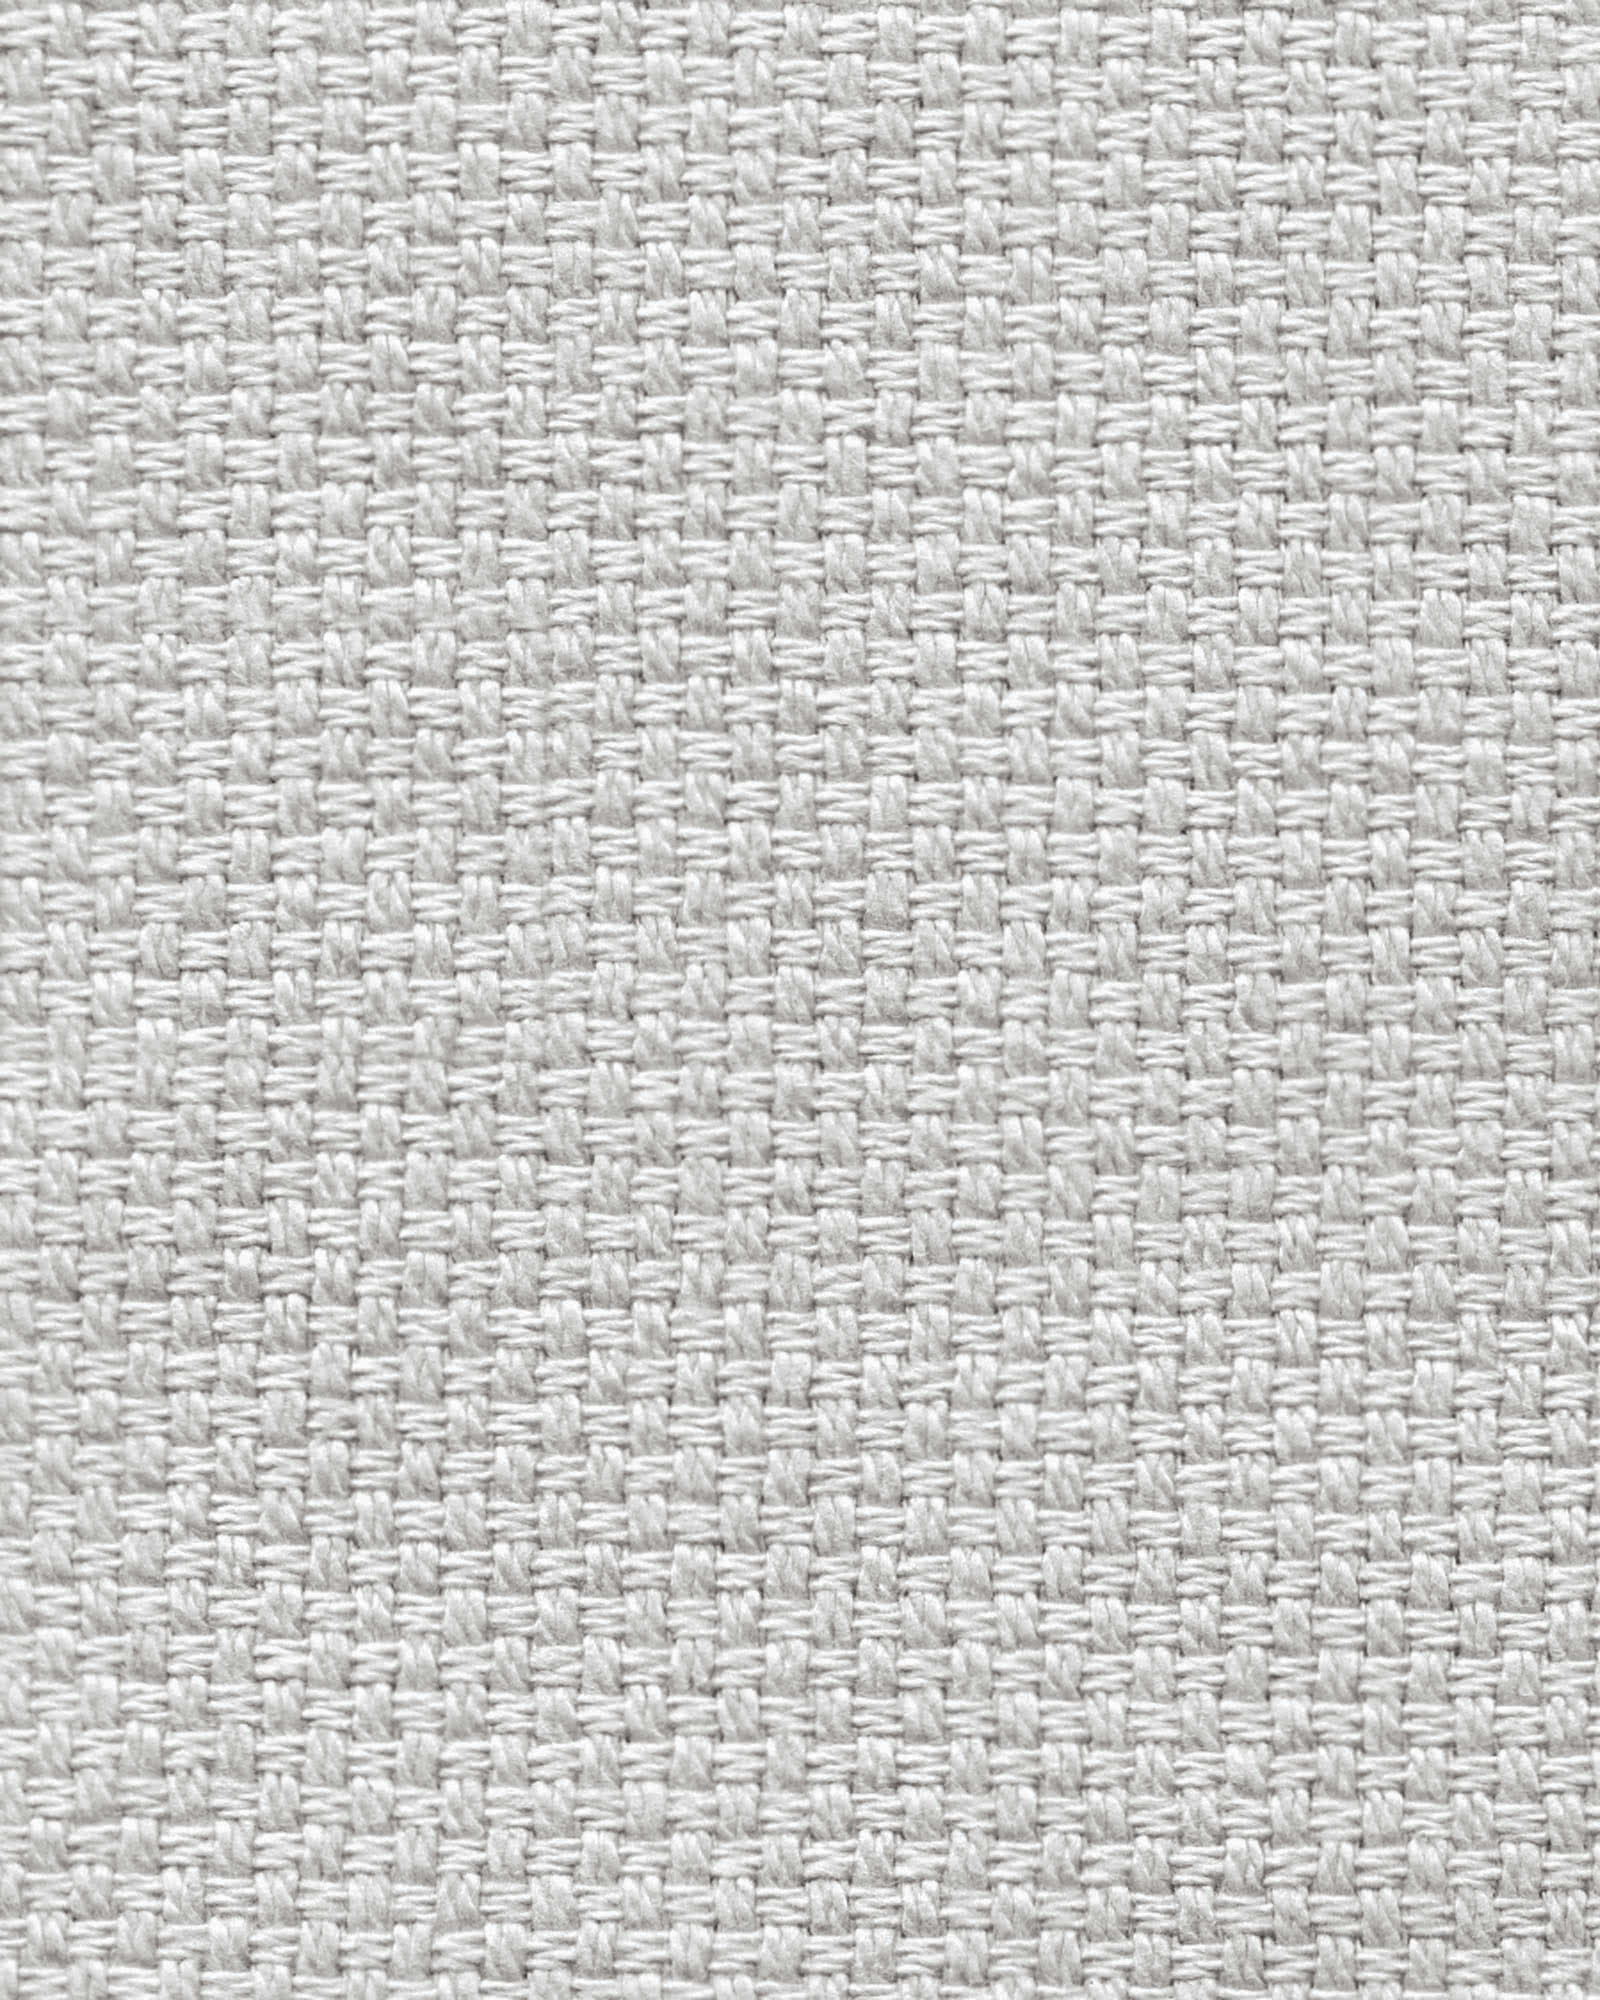 Basketweave Fabric - Fog, Fog